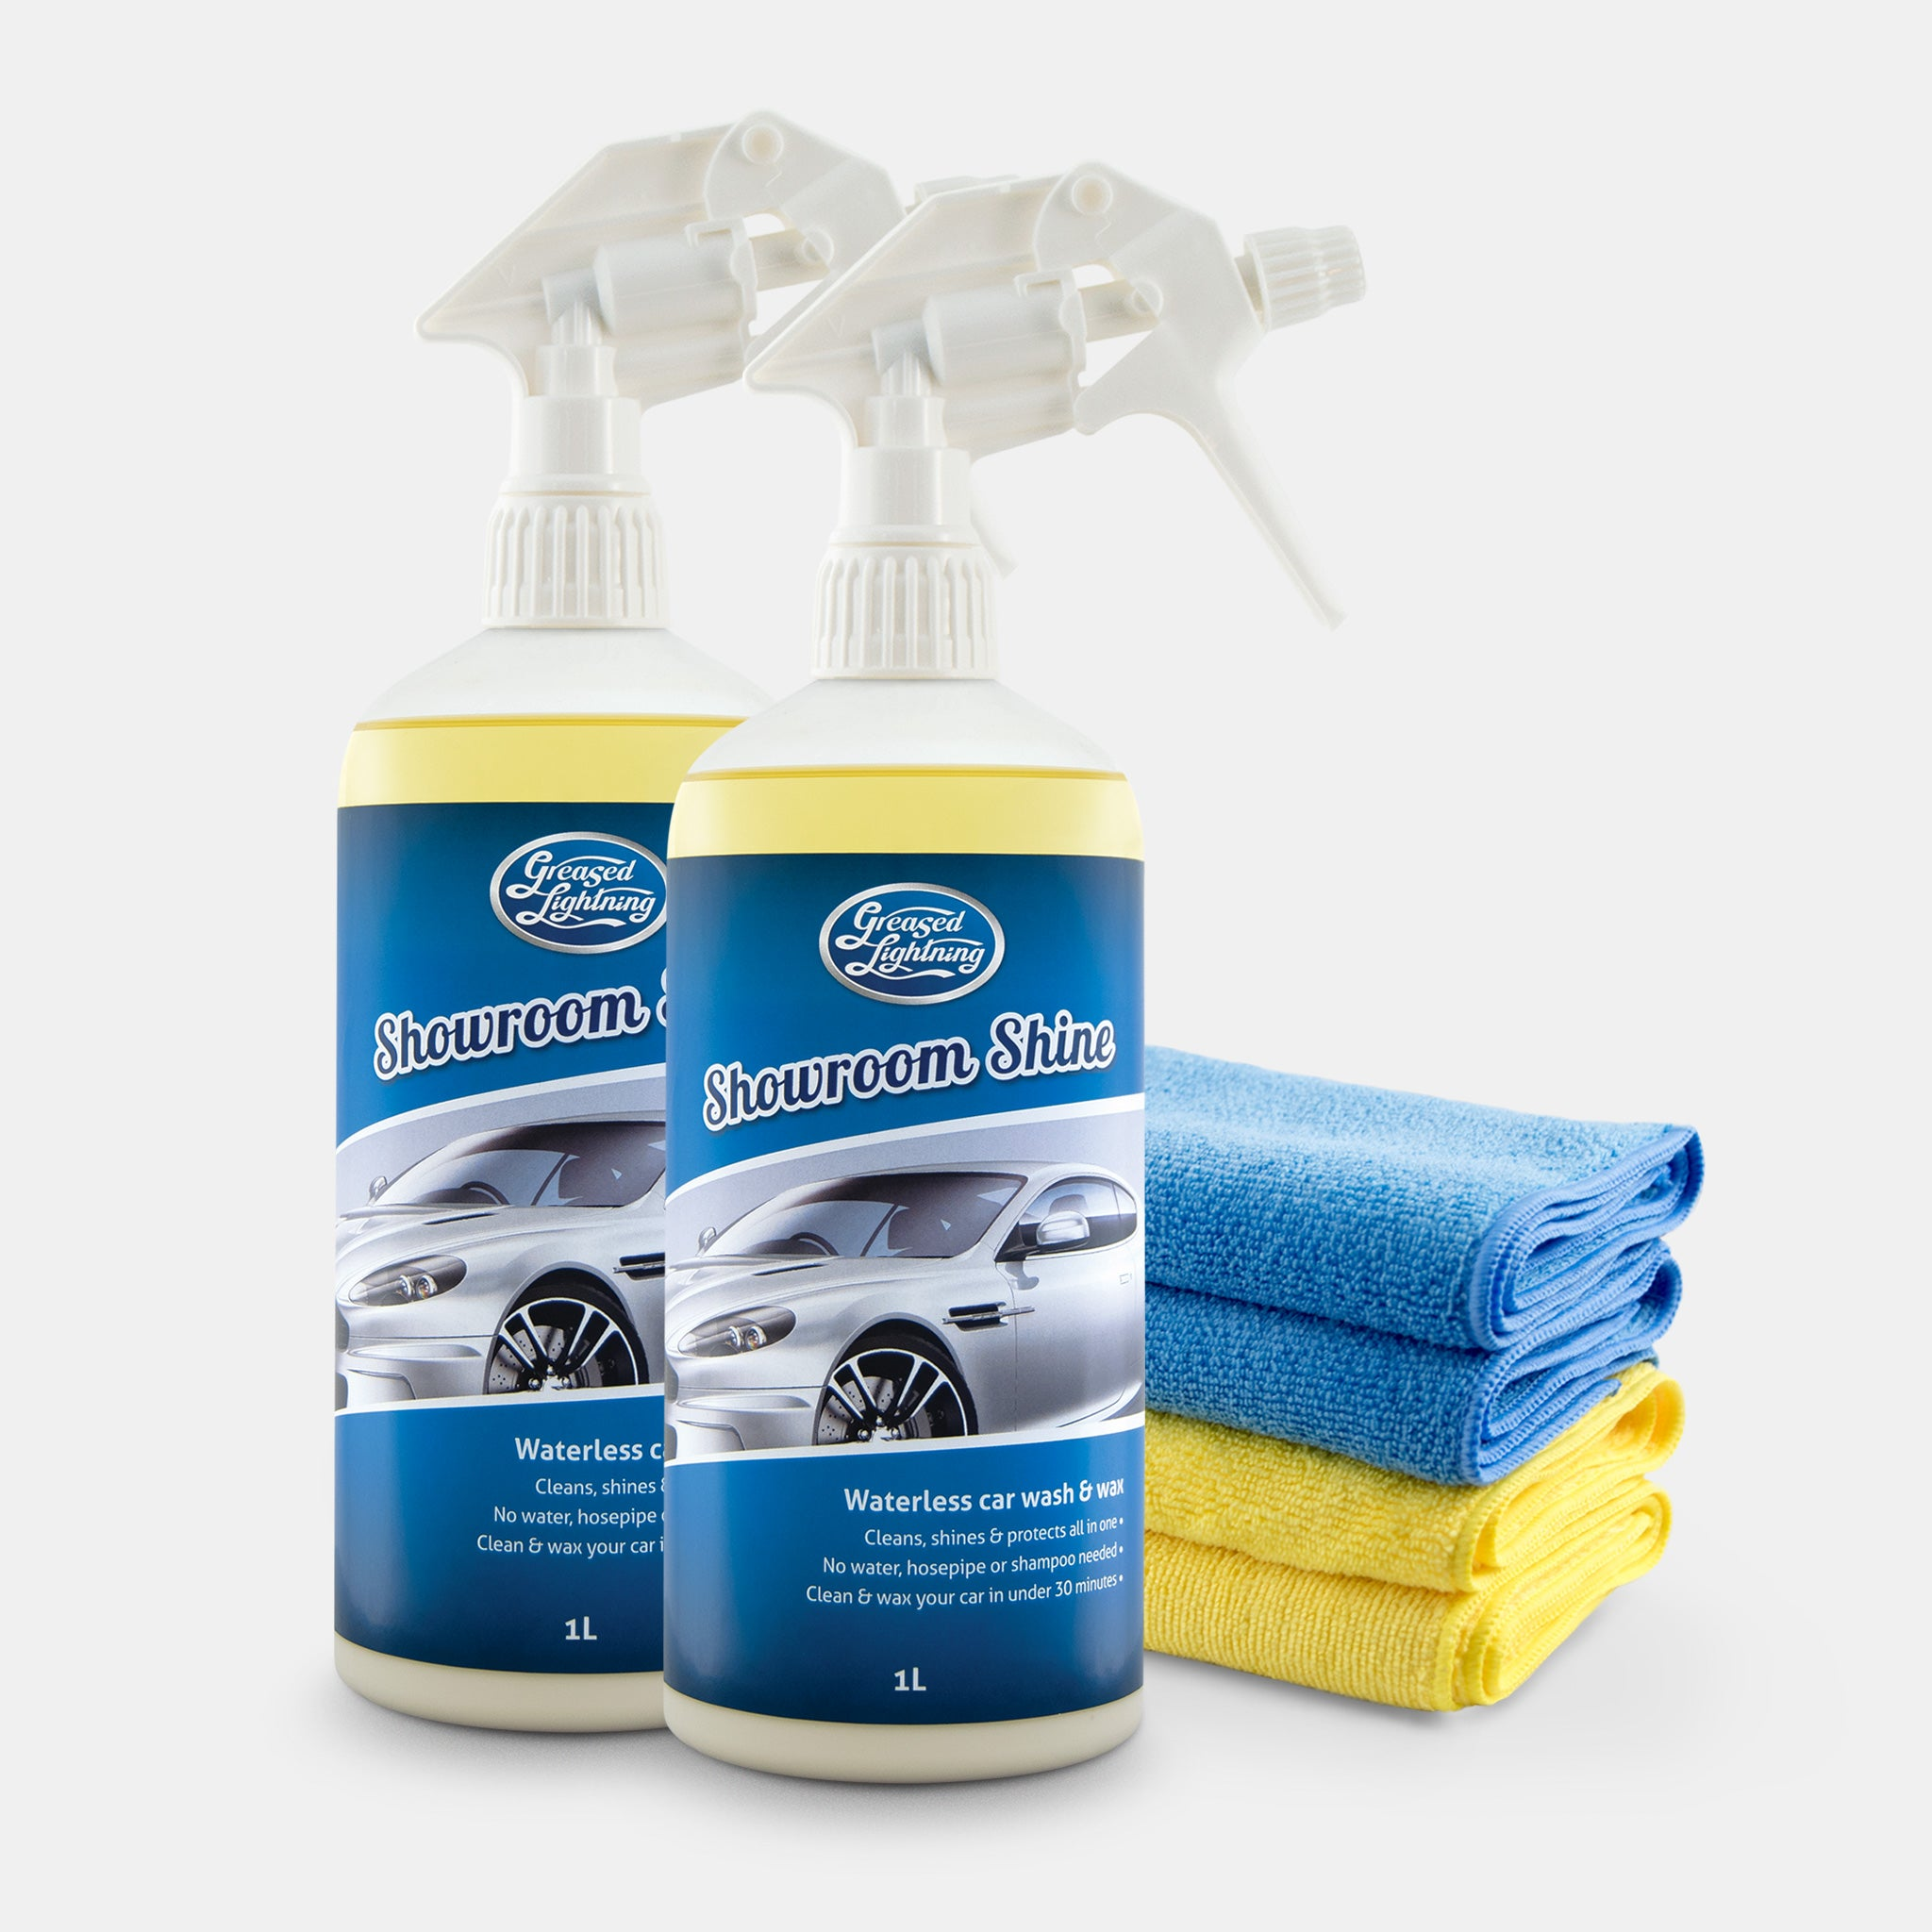 Greased Lightning Showroom Shine Waterless Wash and Wax - Twin Pack with 4 Microfibre Cloths